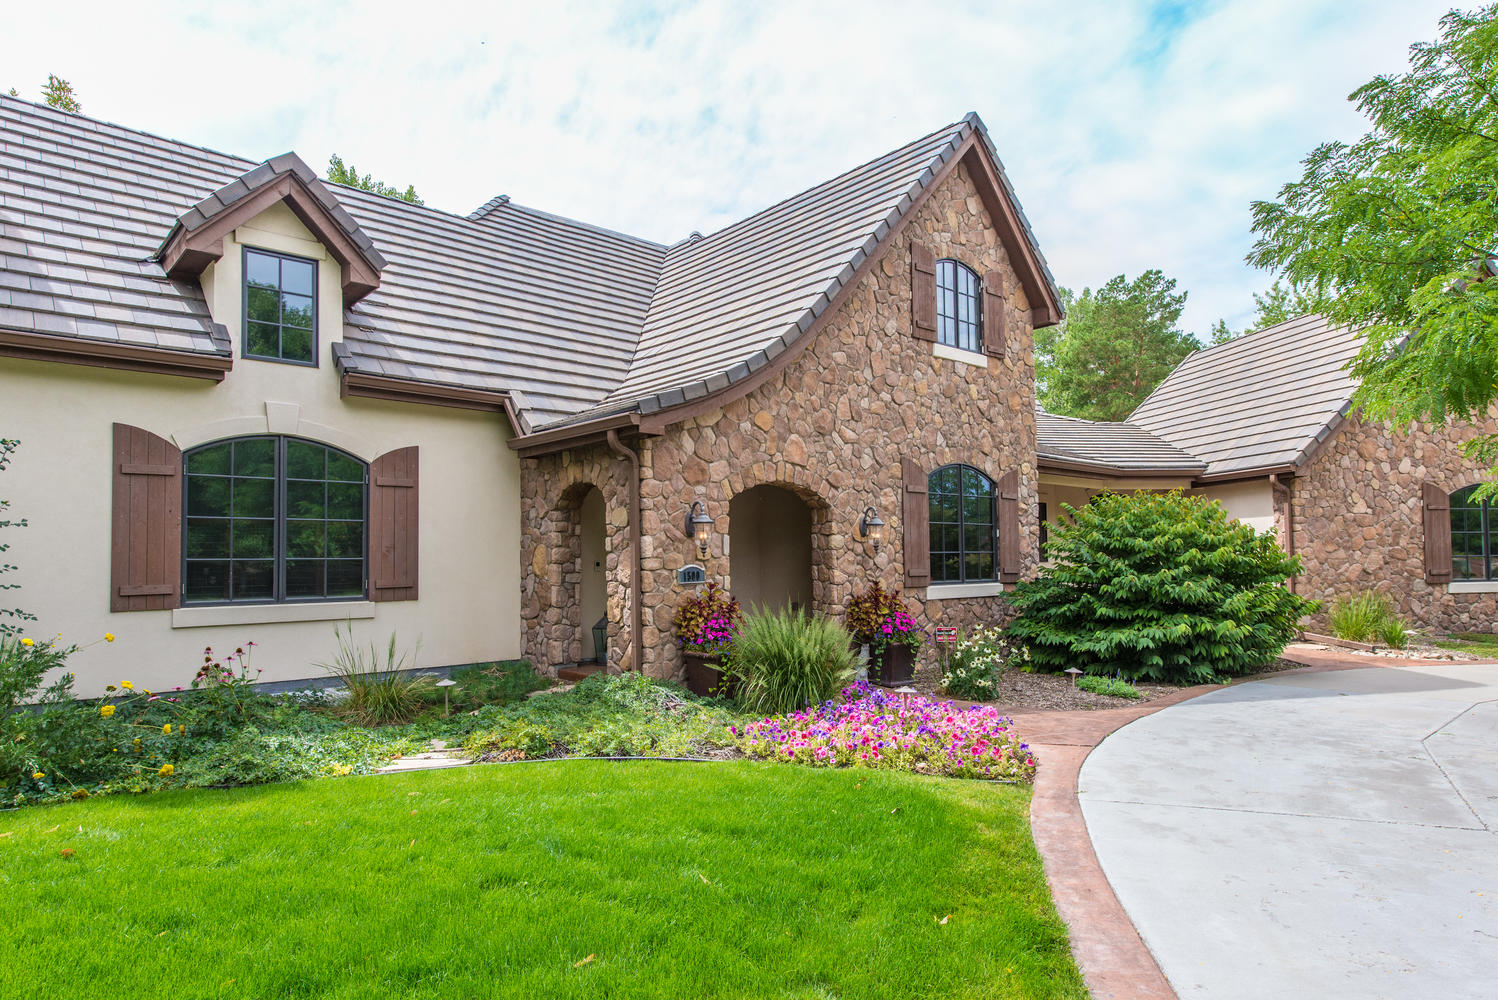 1500 Crestridge Dr, Greenwood Village, CO 80121